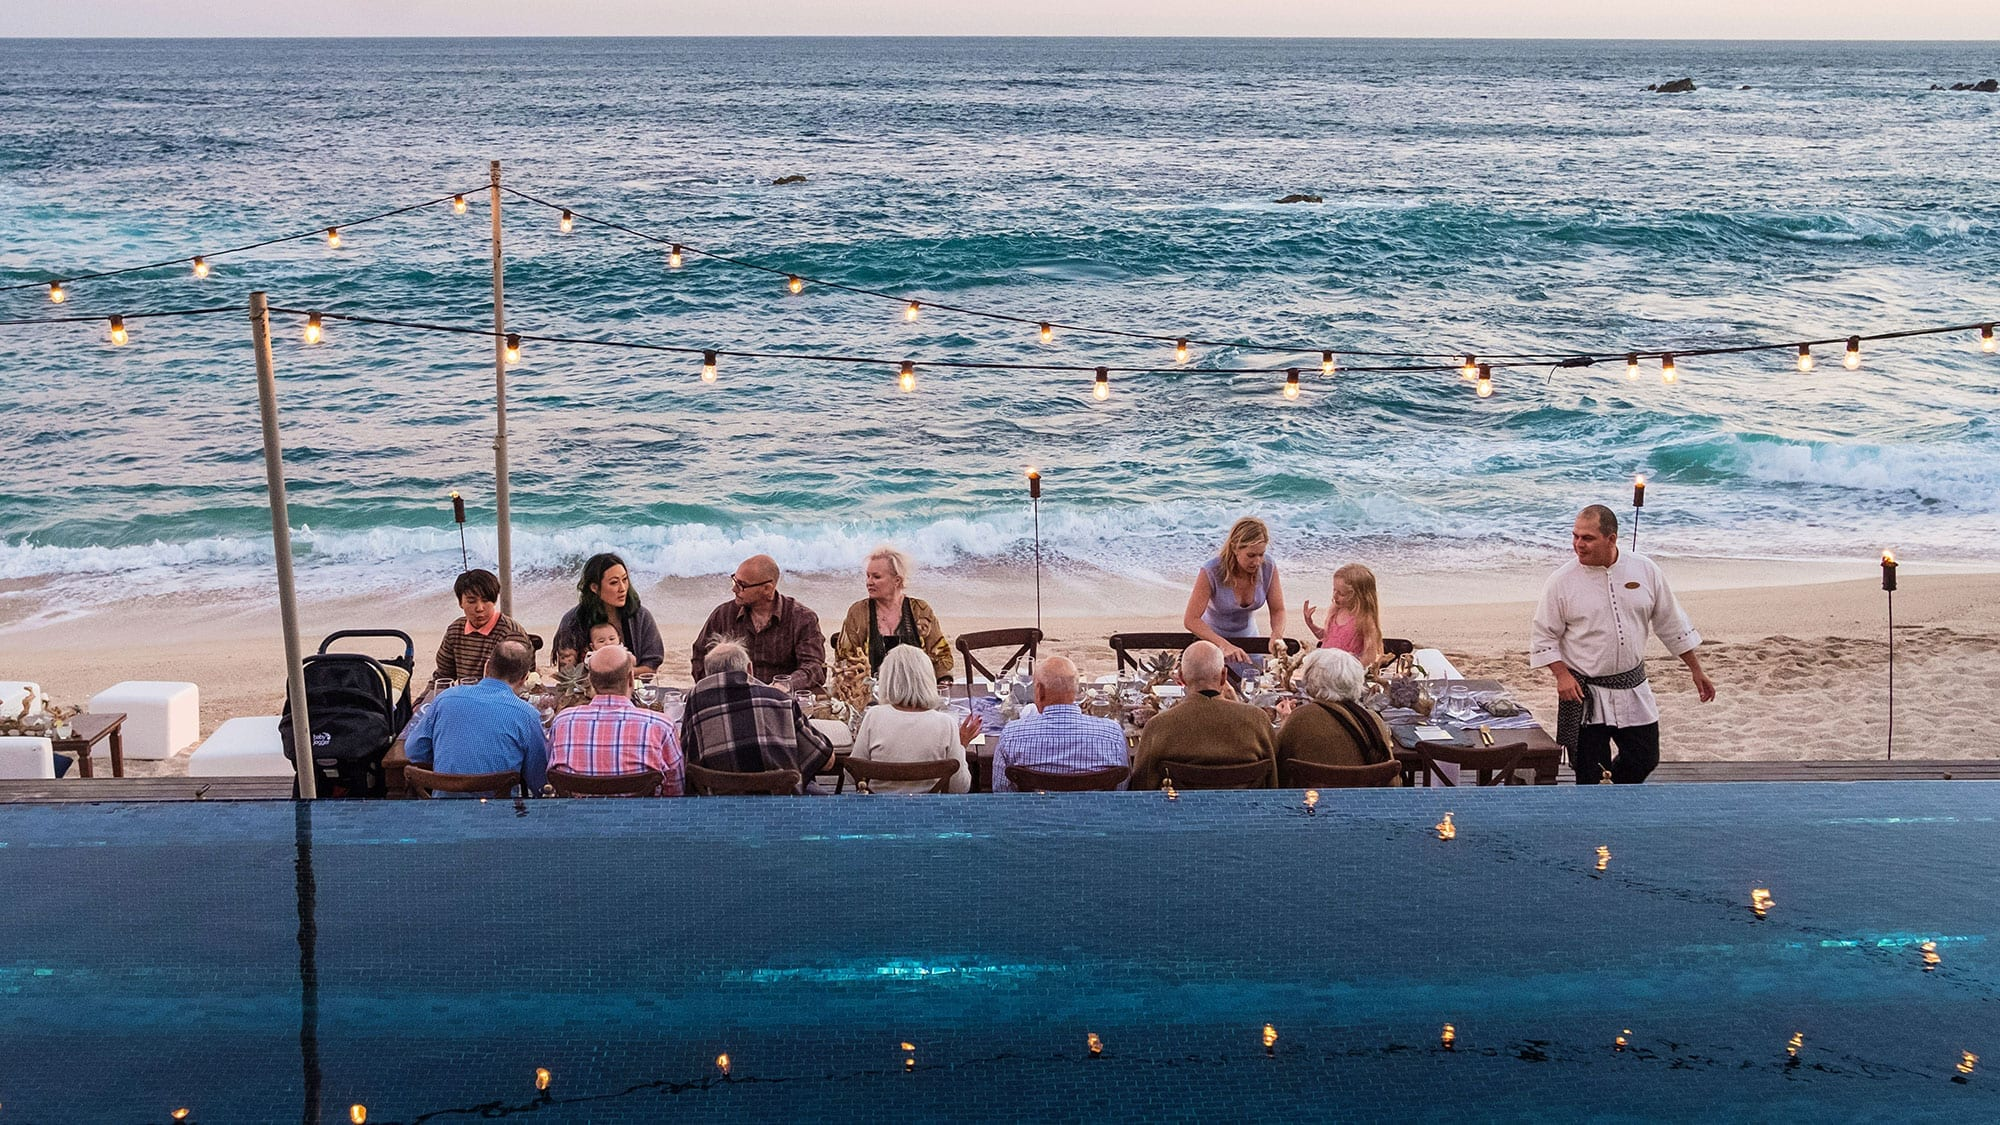 group of people dining on the beach